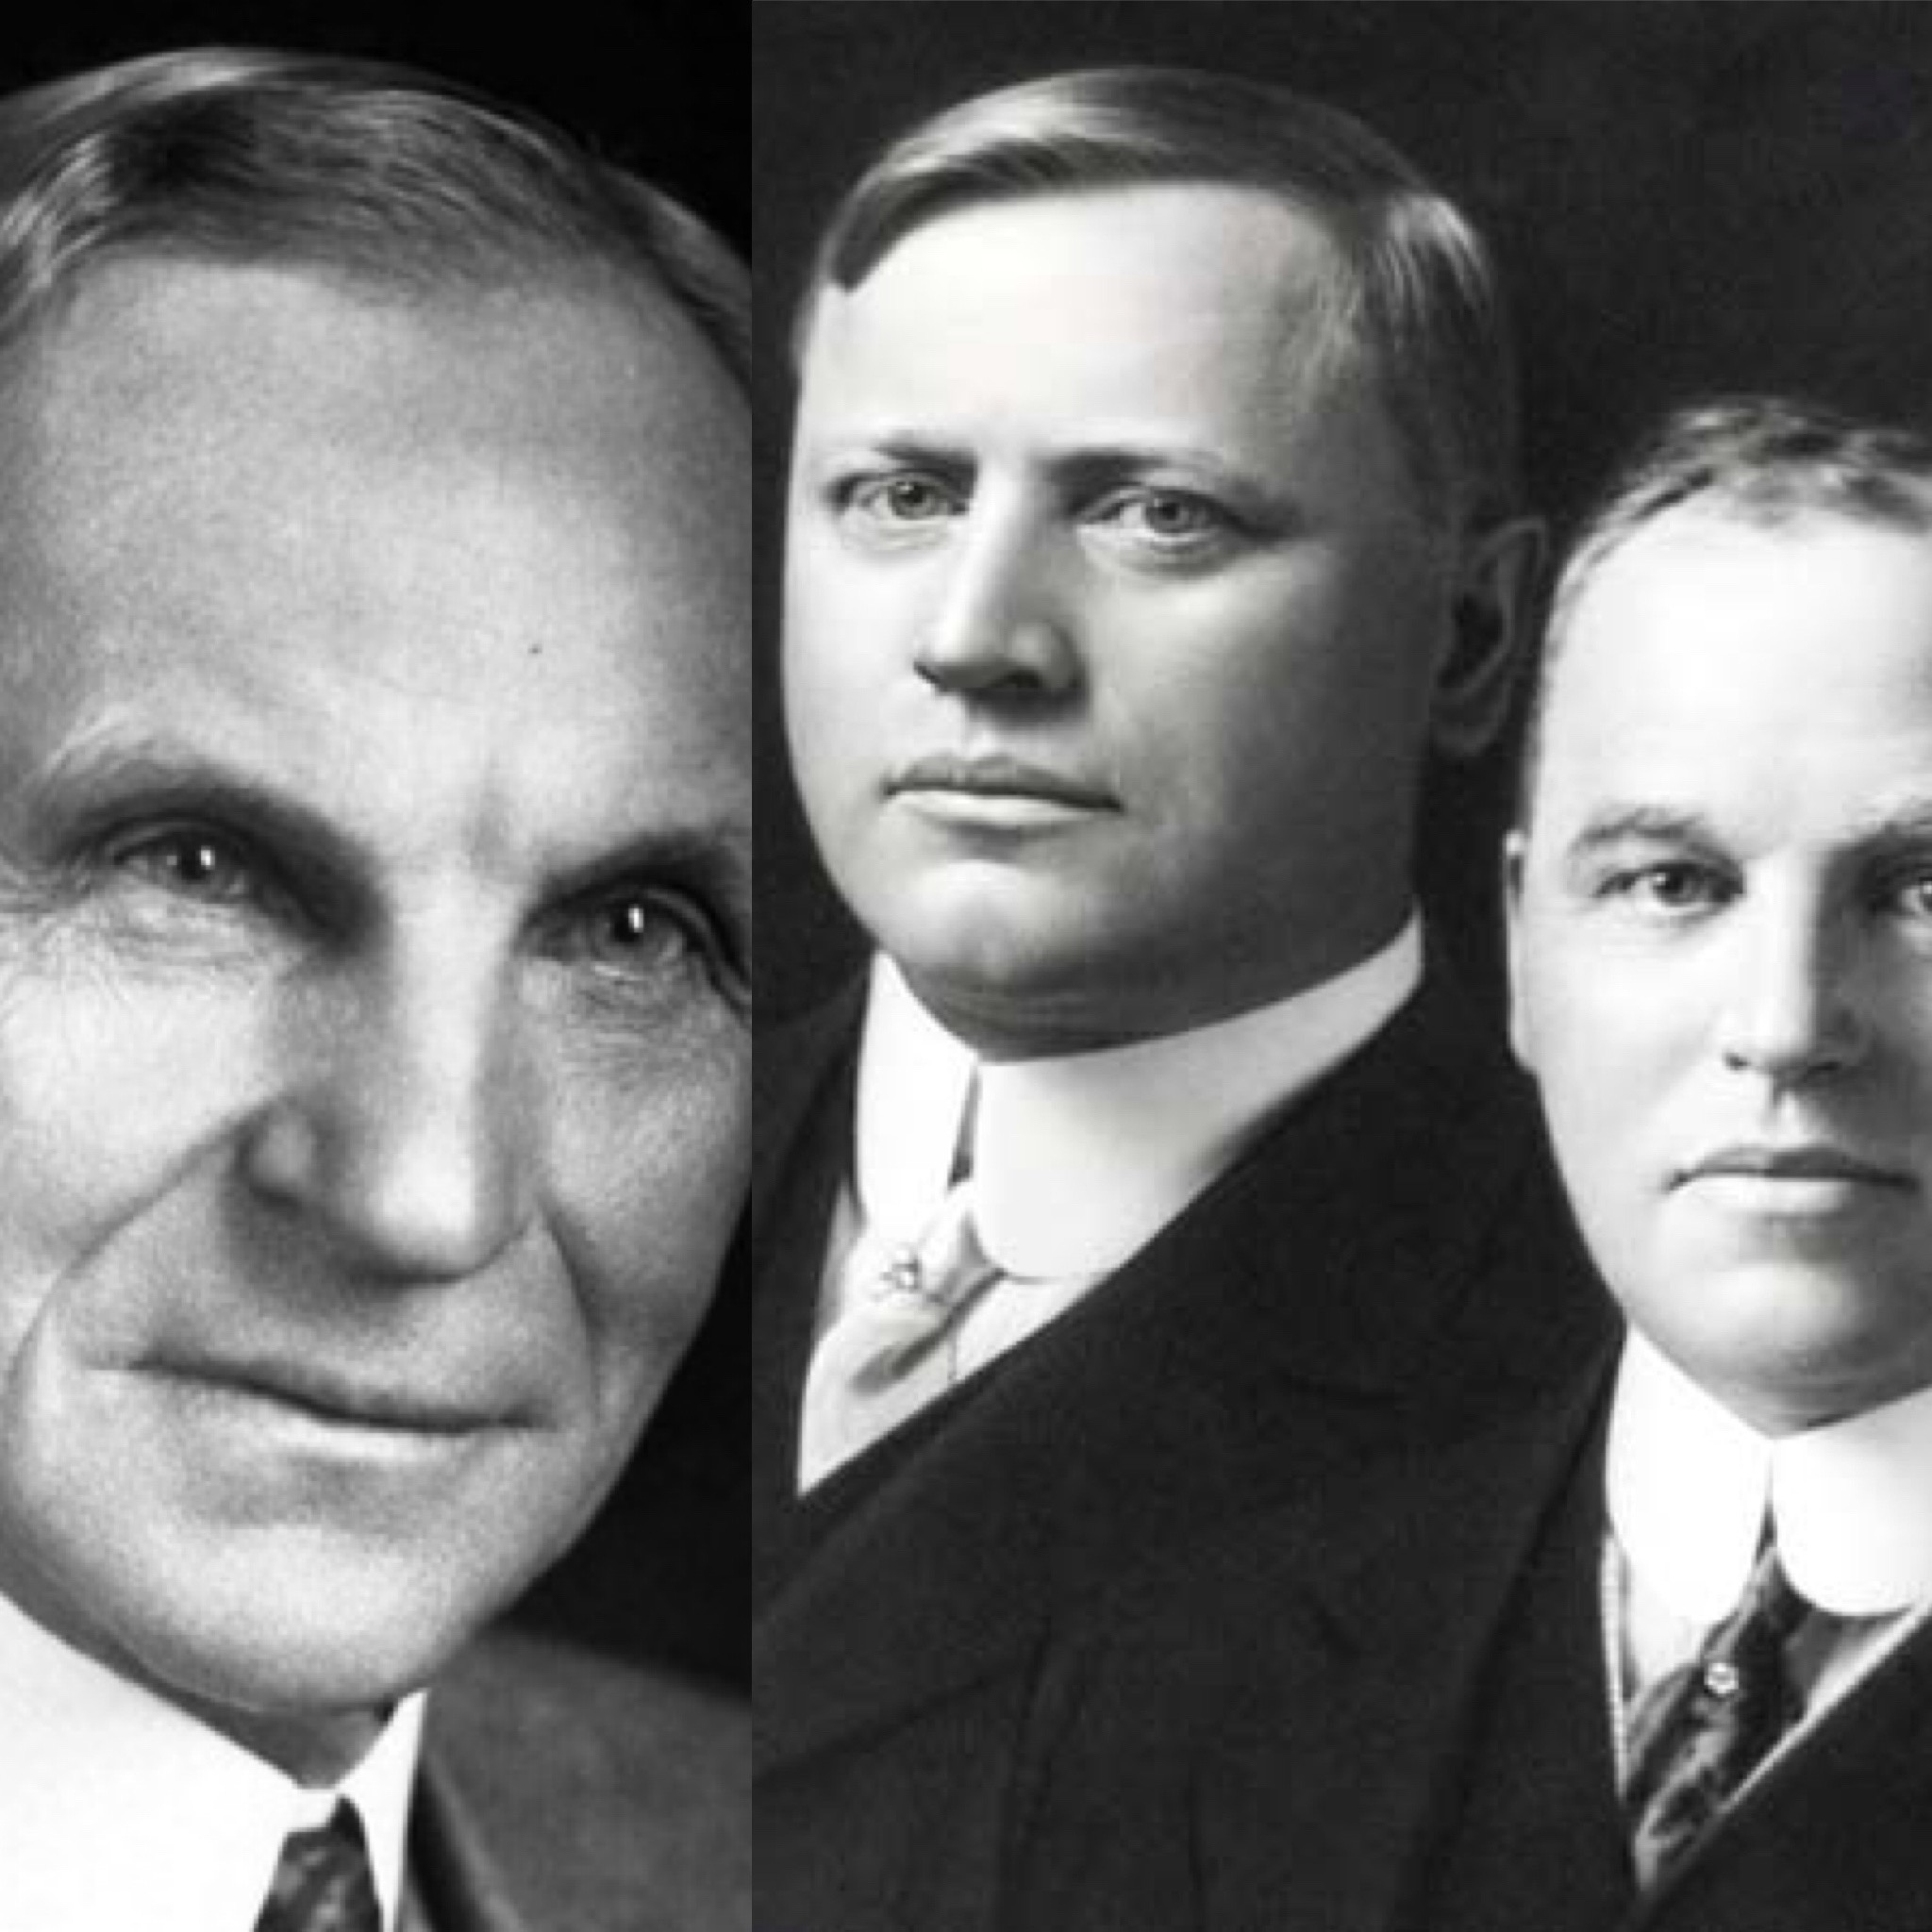 Henry's Big Screw Job: Here's How Henry Ford and the Dodge Brothers Made Untold Millions While Hating Each Other's Guts